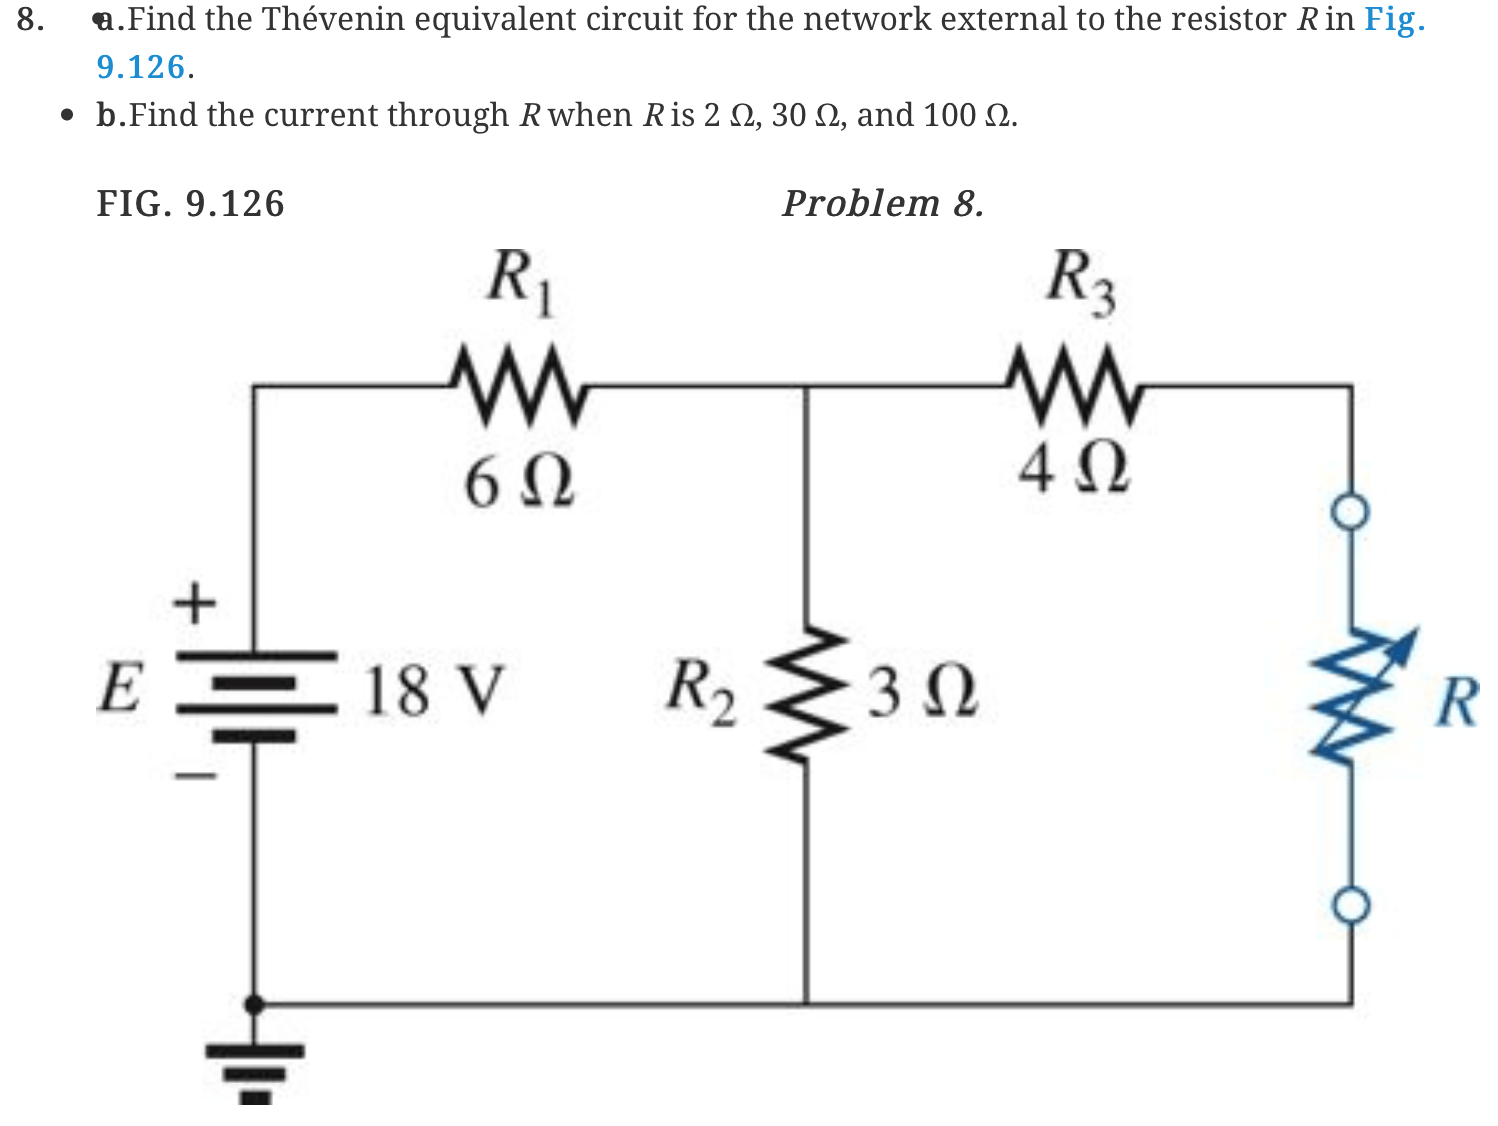 determine the thevenin equivalent circuit seen by cheggcom